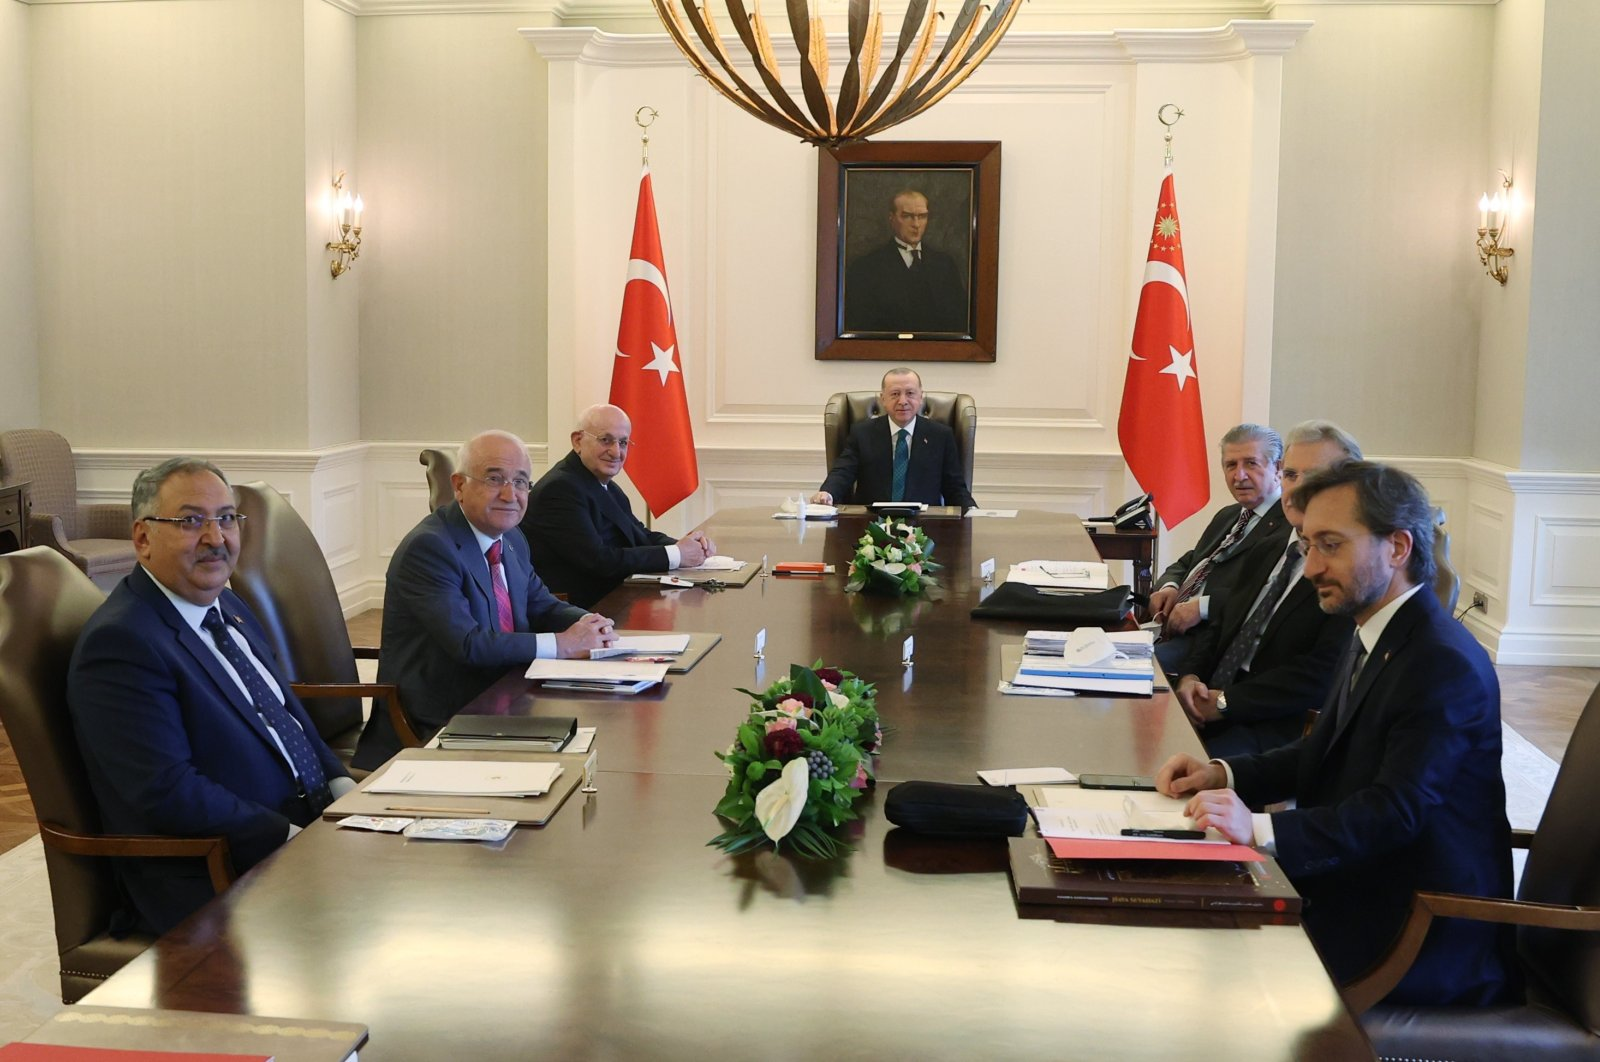 President Recep Tayyip Erdoğan attends a meeting with High Advisory Board members in Ankara, April 22, 2021. (IHA)